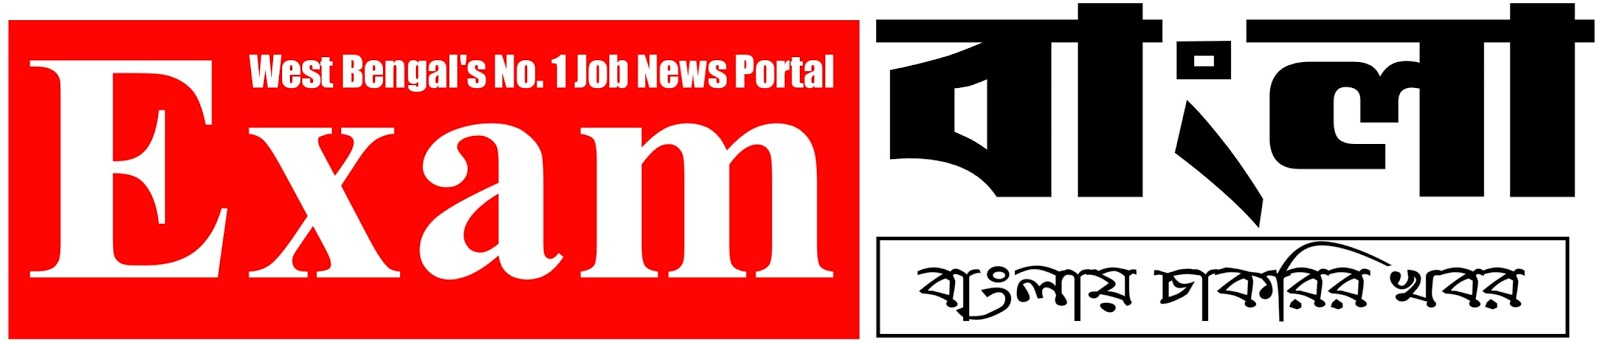 ExamBangla.com : West Bengal's No. 1 Job News Portal